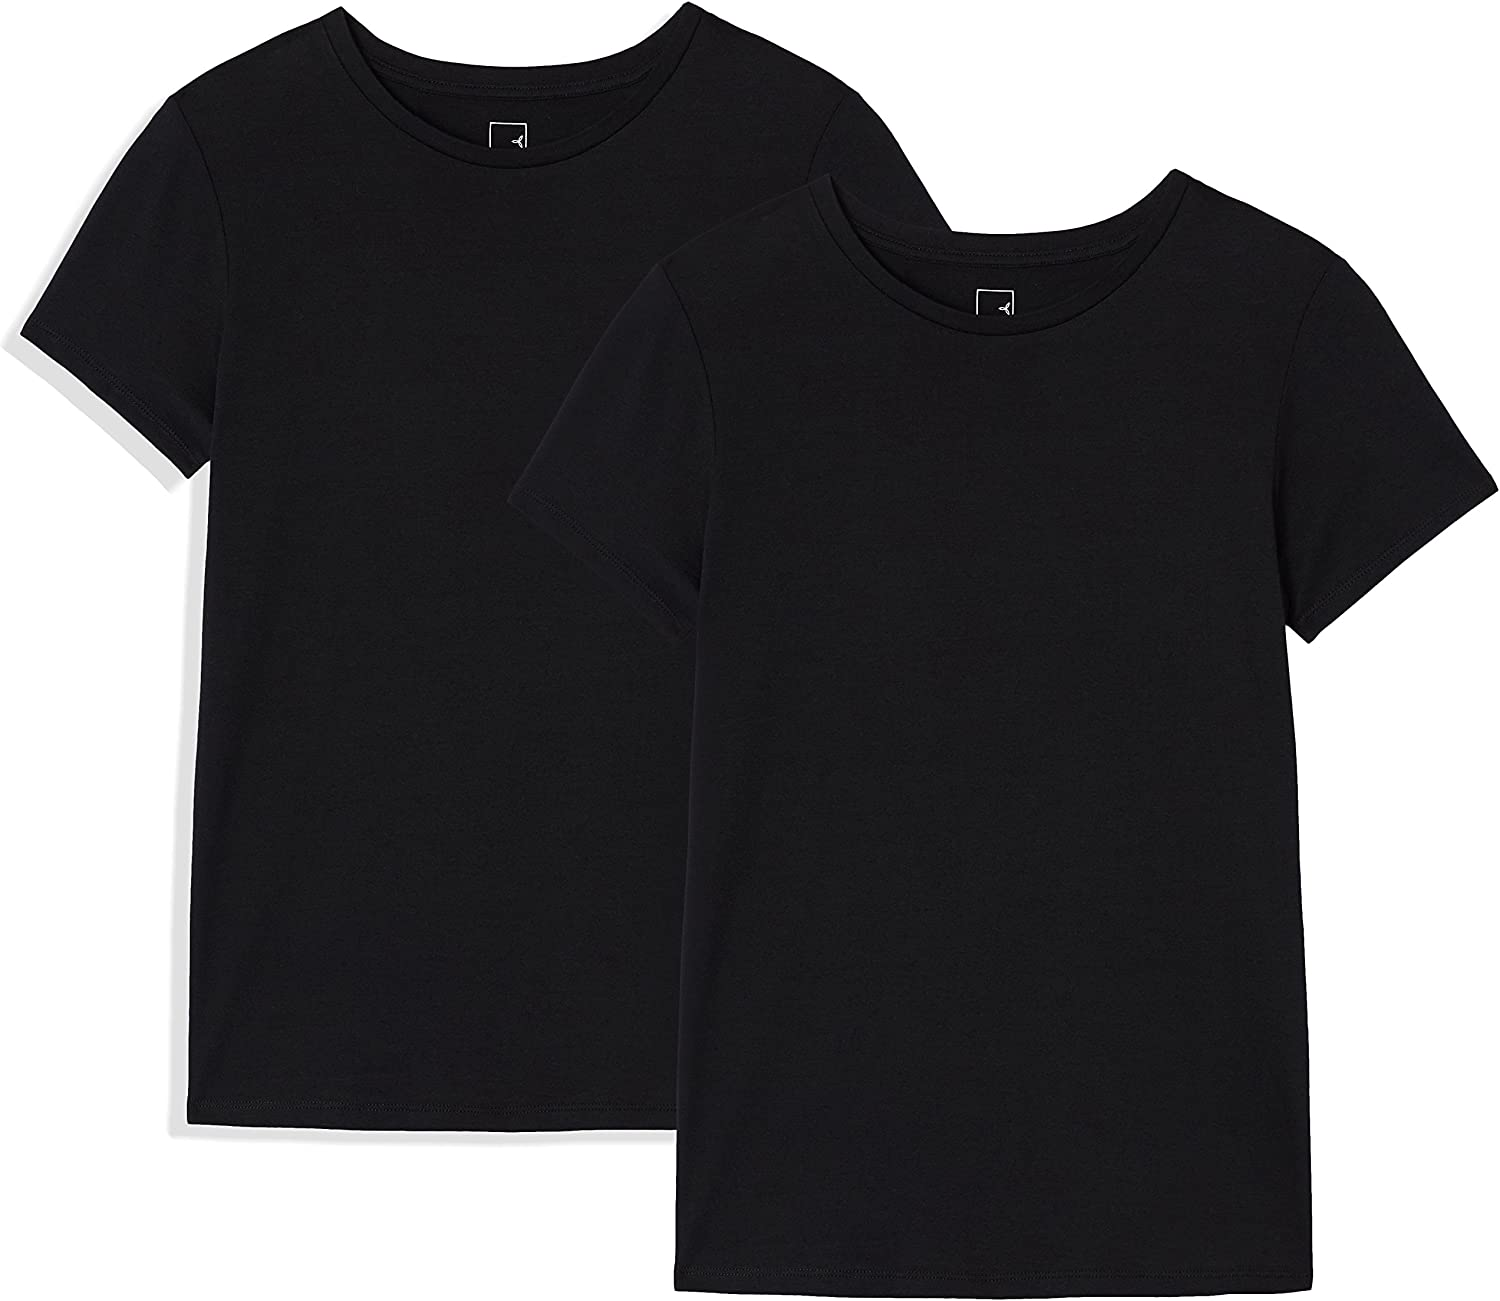 Marca Amazon - MERAKI 2 Pack Crew Neck, Camiseta con Cuello Redondo Mujer, Lot de 2